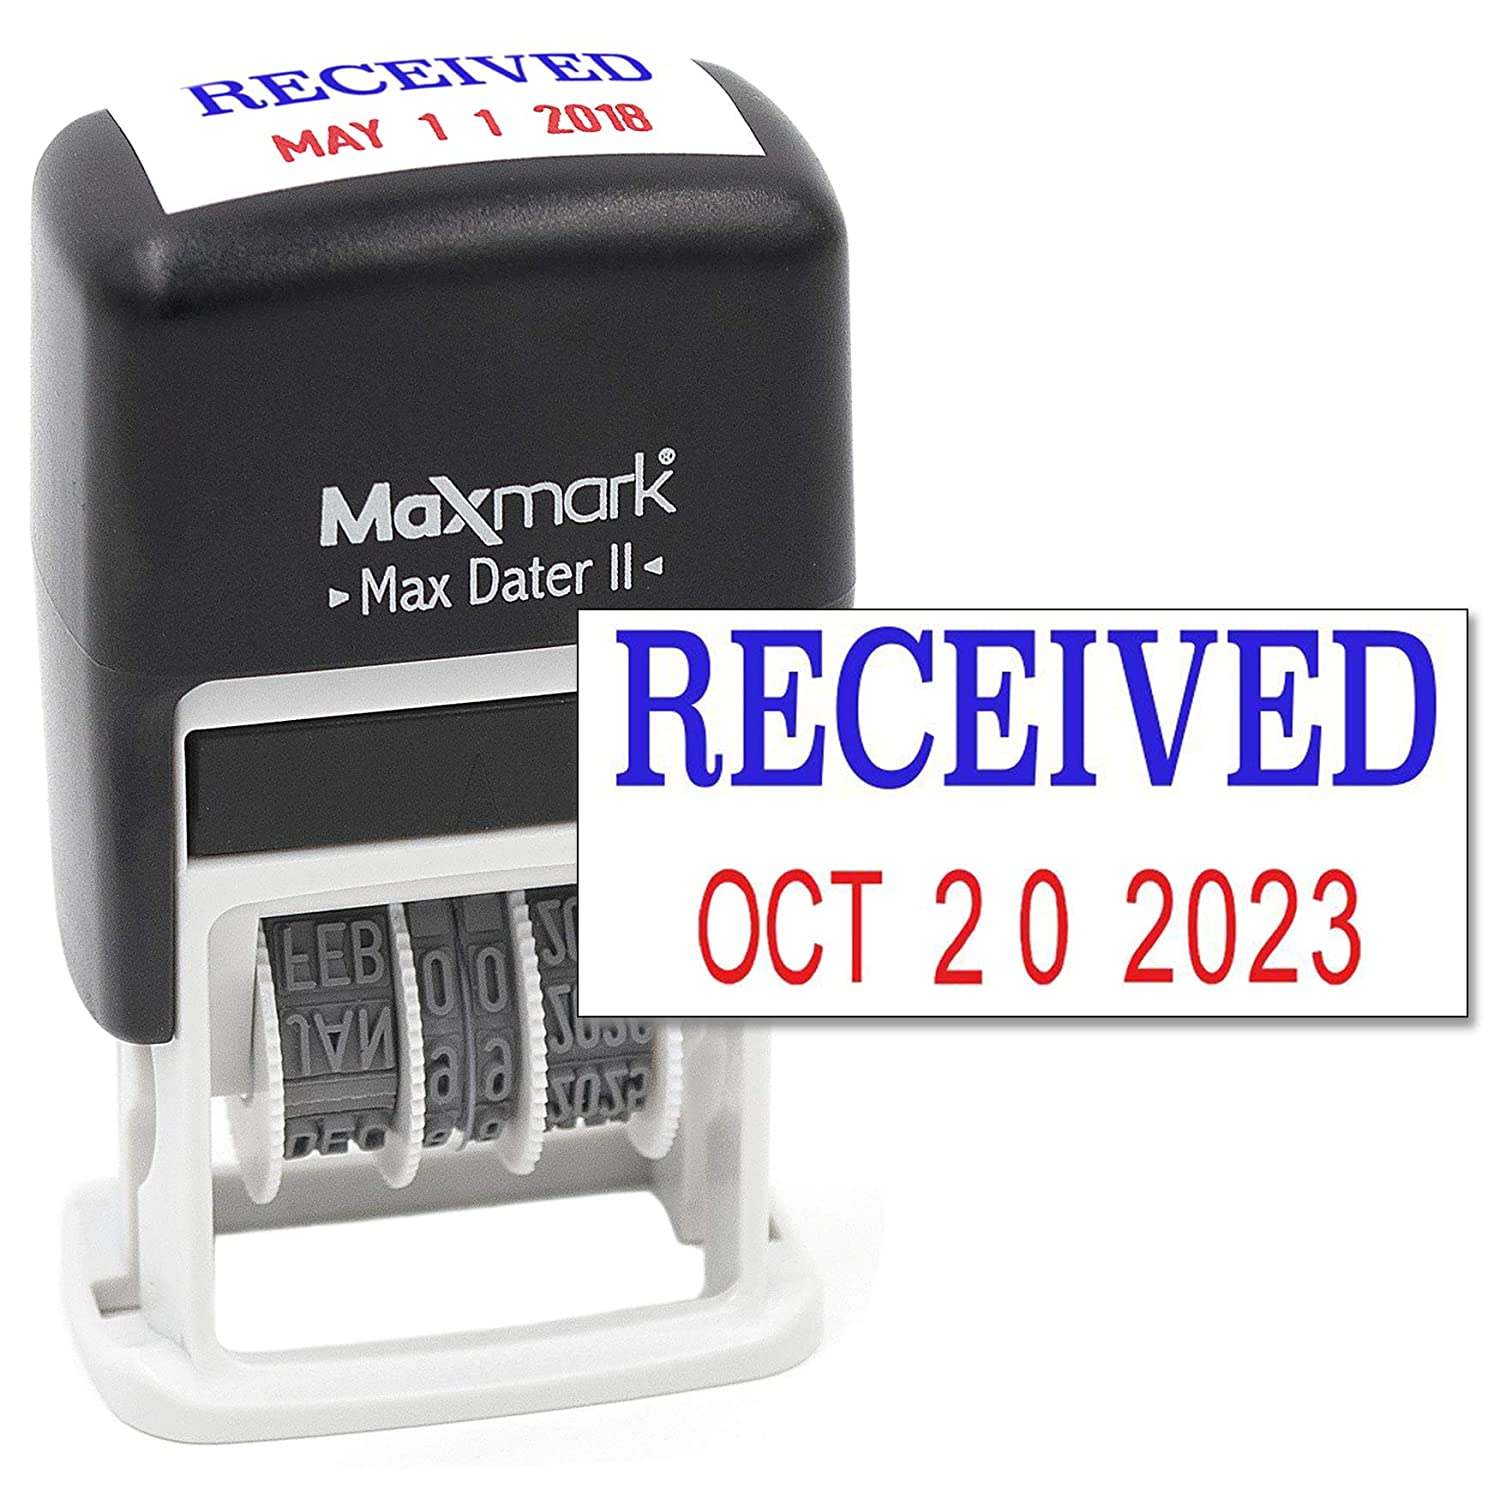 MaxMark Self-Inking Rubber Date Office Stamp with Posted Phrase Blue Ink & Date RED Ink (Max Dater II), 12-Year Band OP-31280